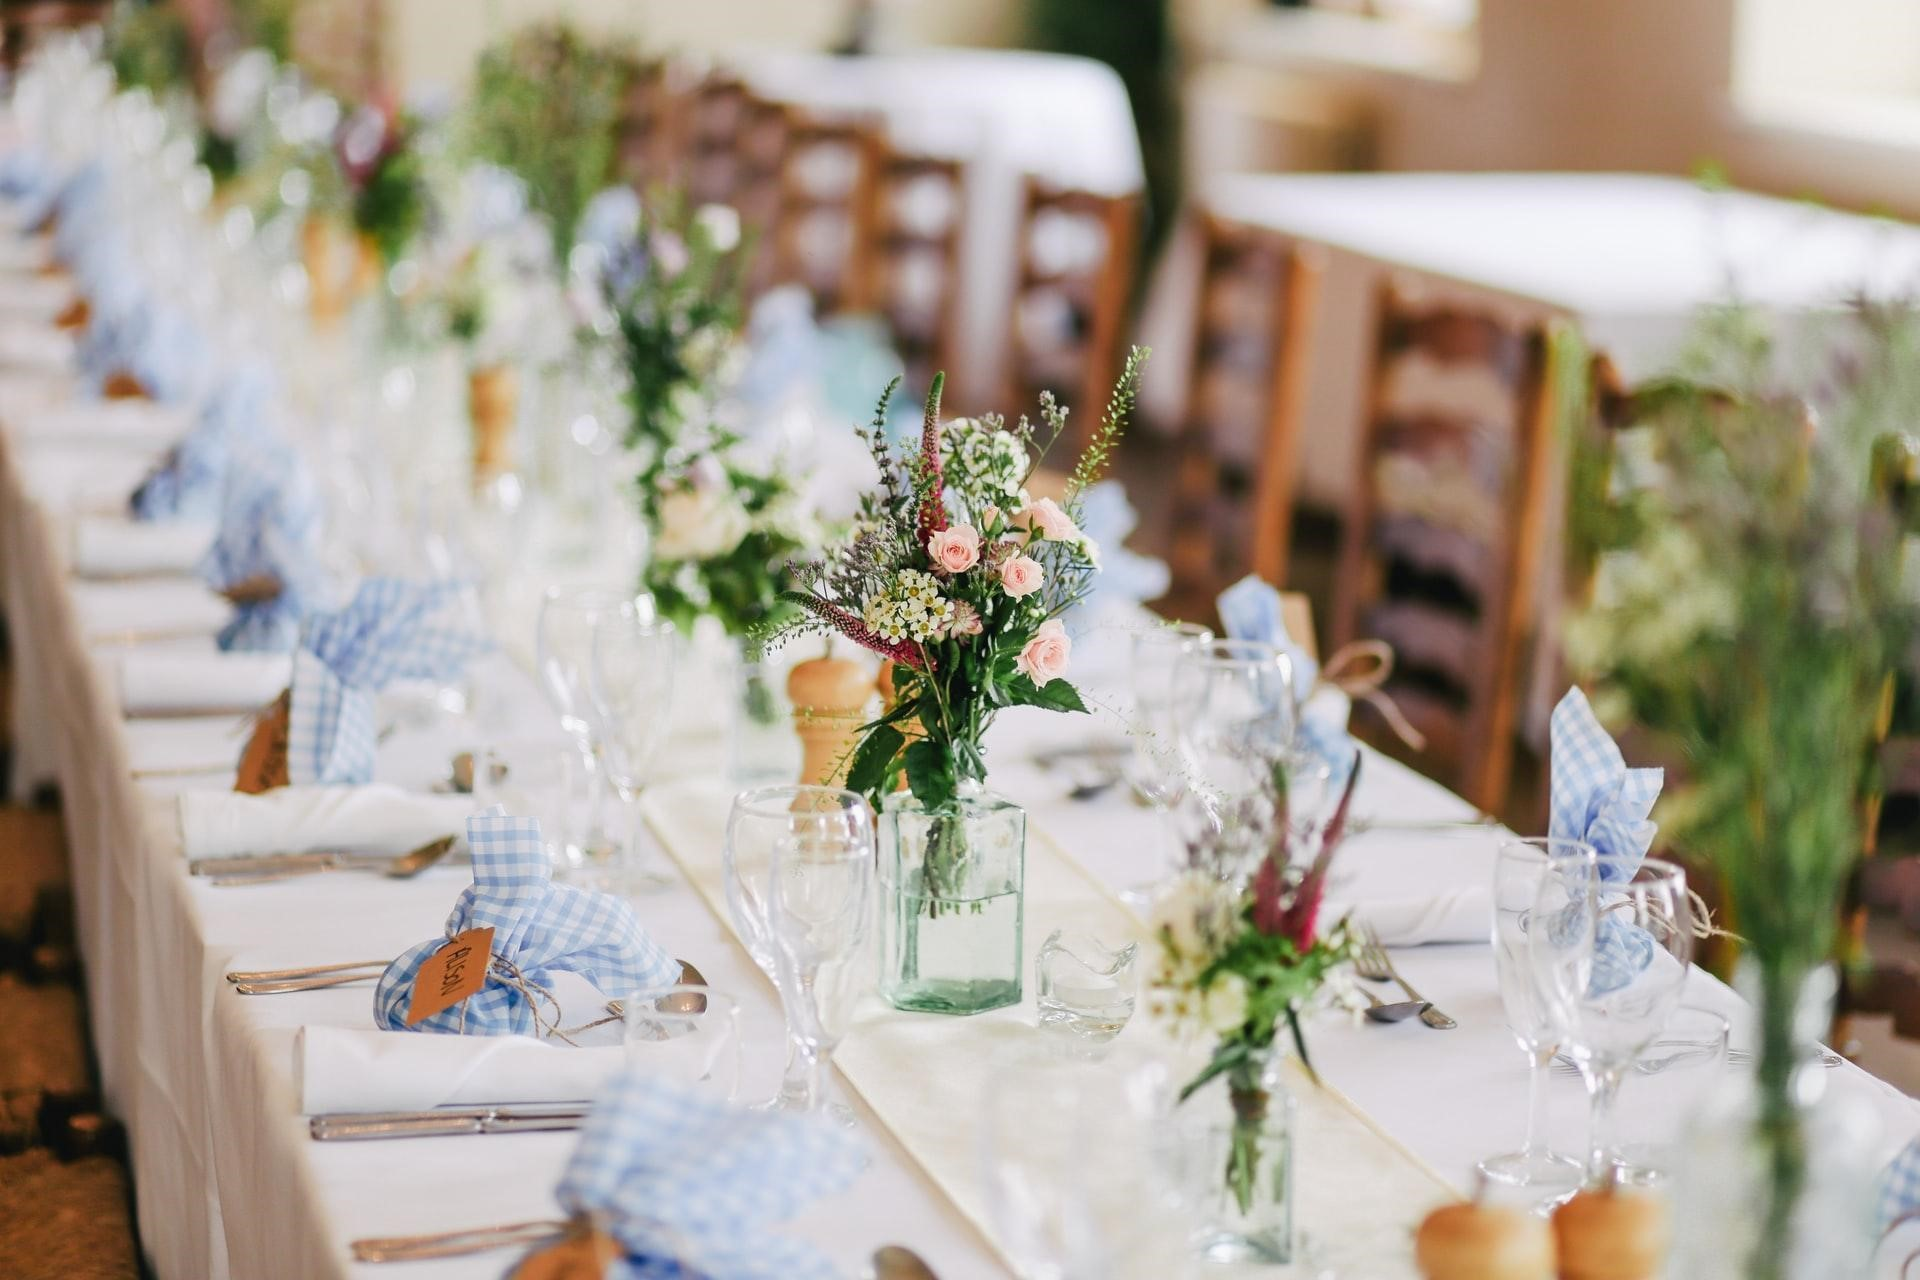 Create a Romantic French-Inspired Wedding Reception Your Guests Will Remember